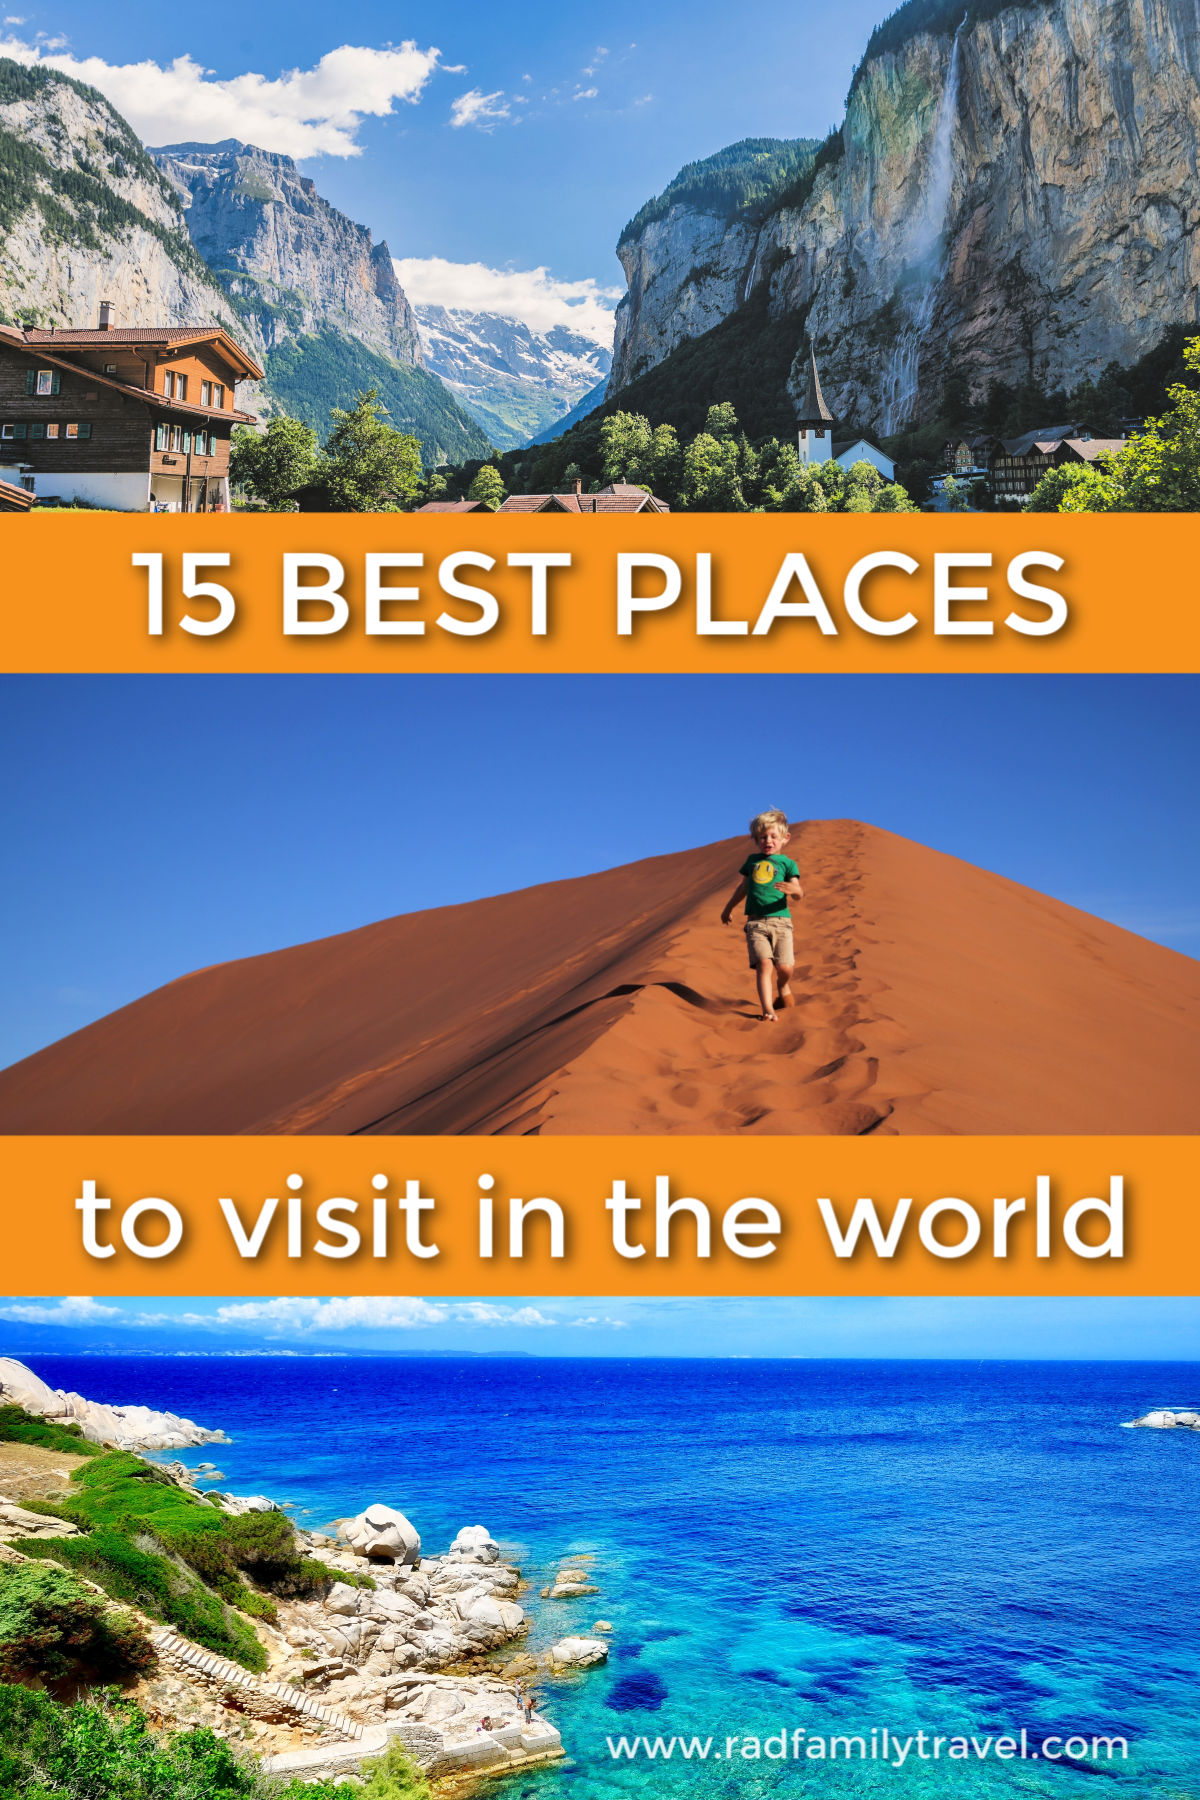 15 best places to visit in the world